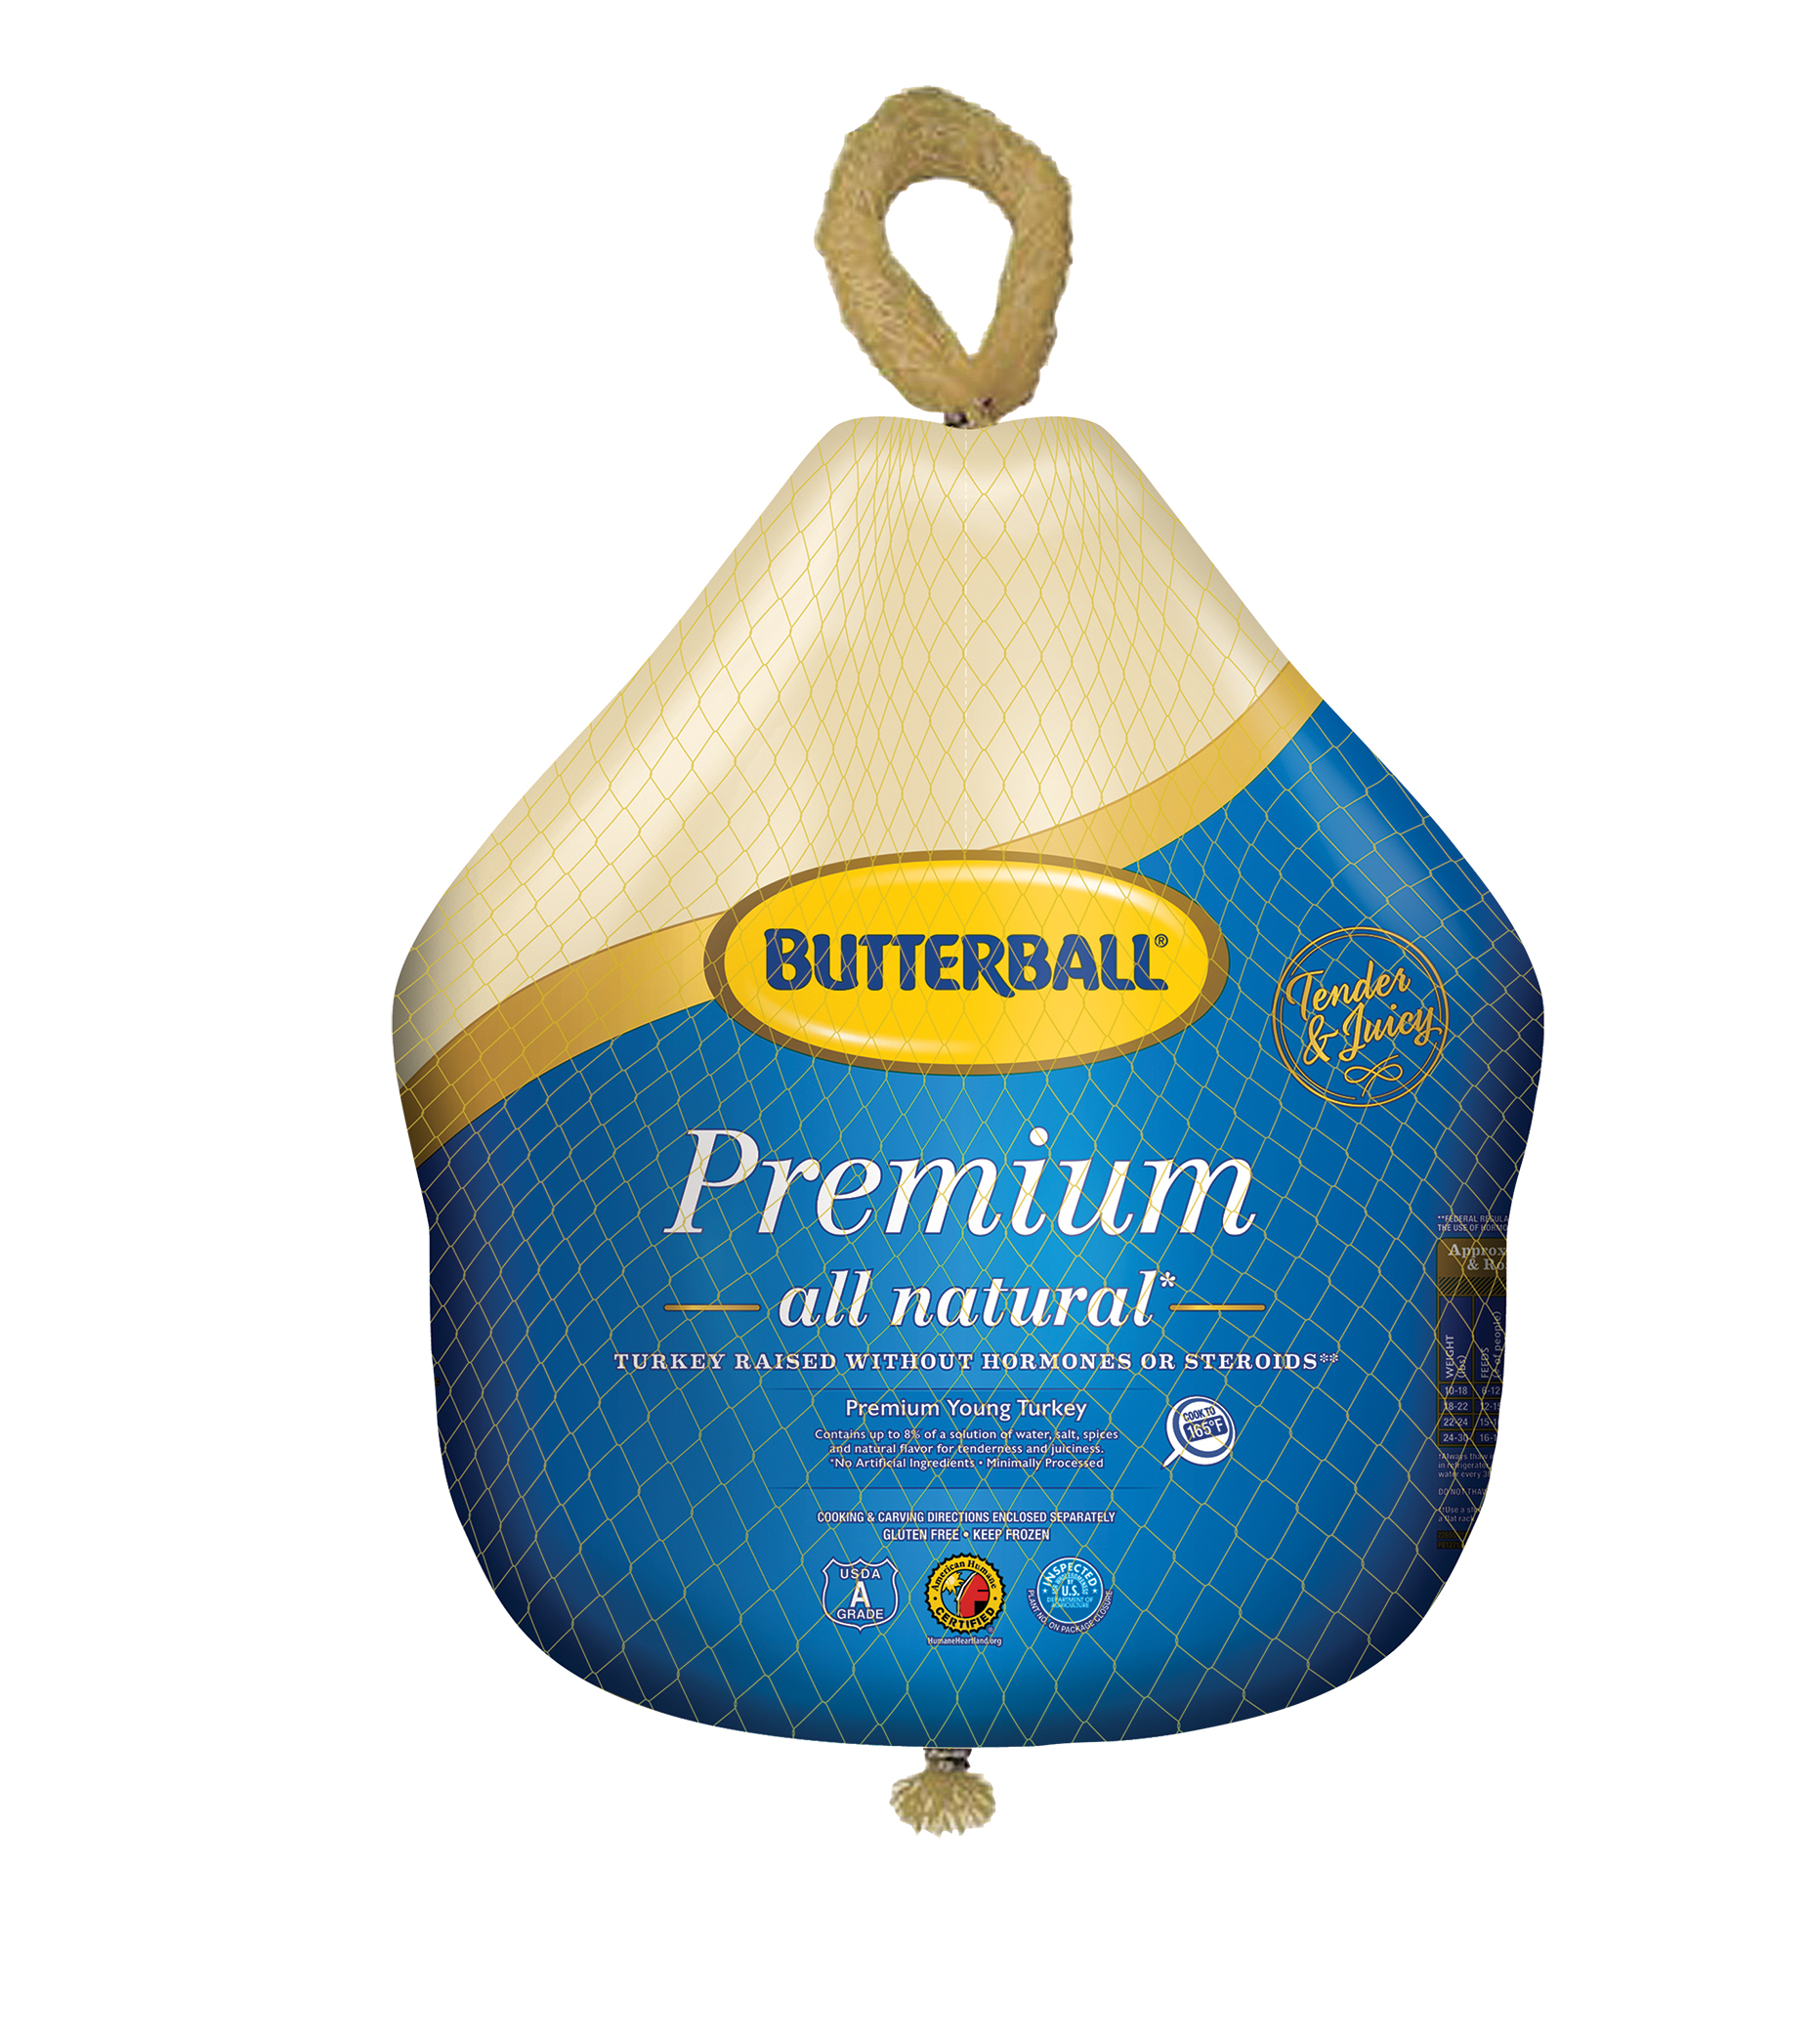 Butterball® Frozen All Natural Premium Young Turkey, 10.0-16.0 lb